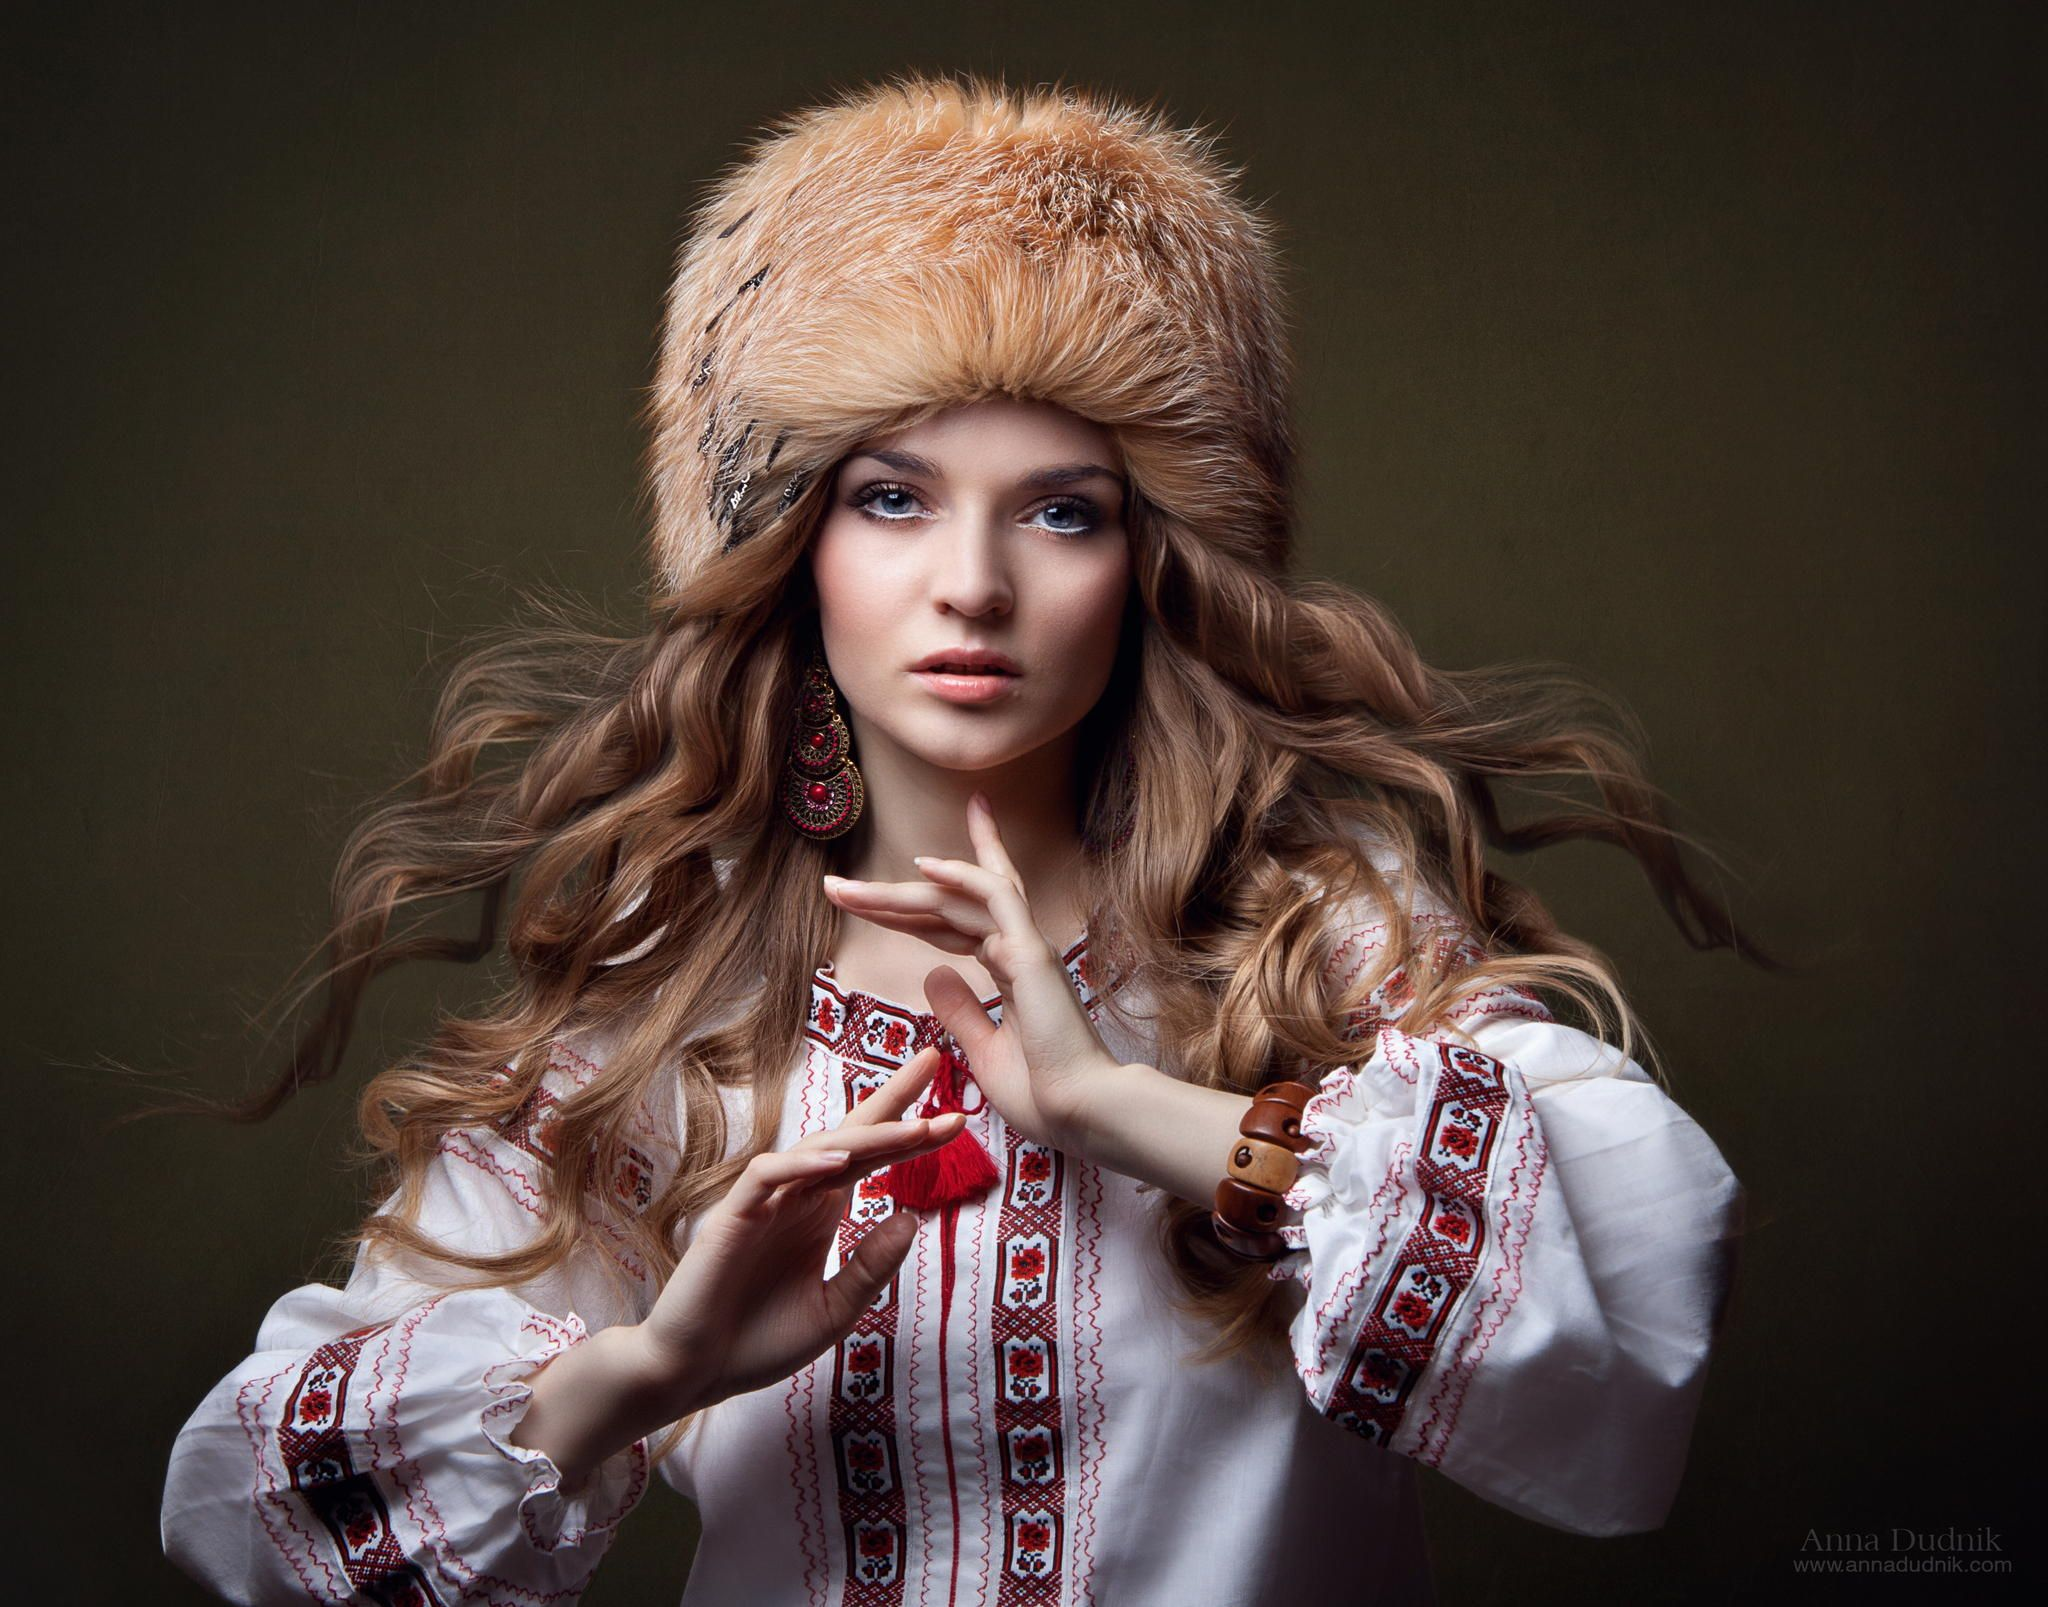 Would Love To Do A Ukrainian Photoshoot Someday! By Anna